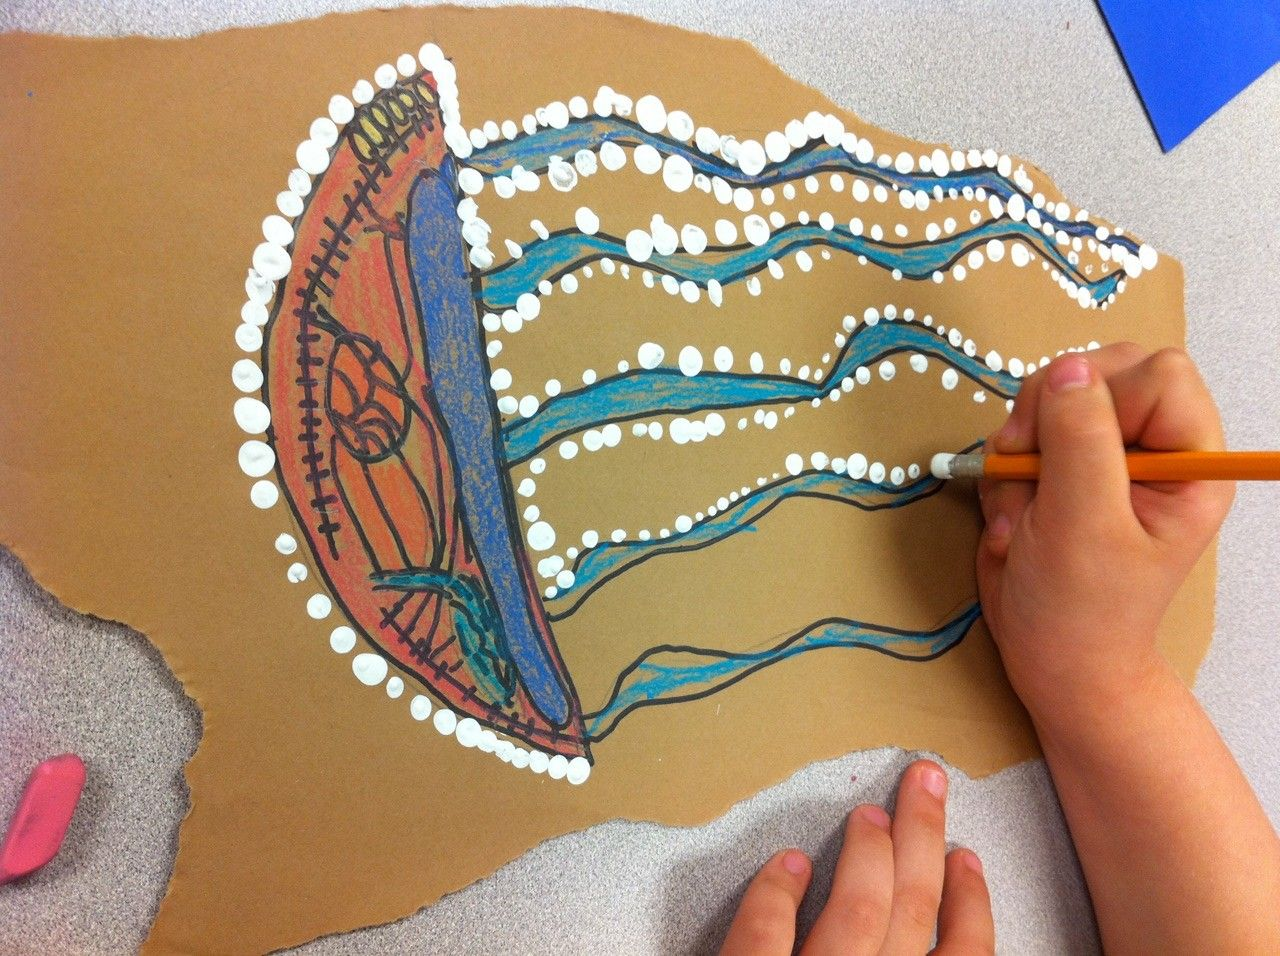 Aboriginal Bark Painting & Boomerang Workshop - K11 Art Infinity - K11